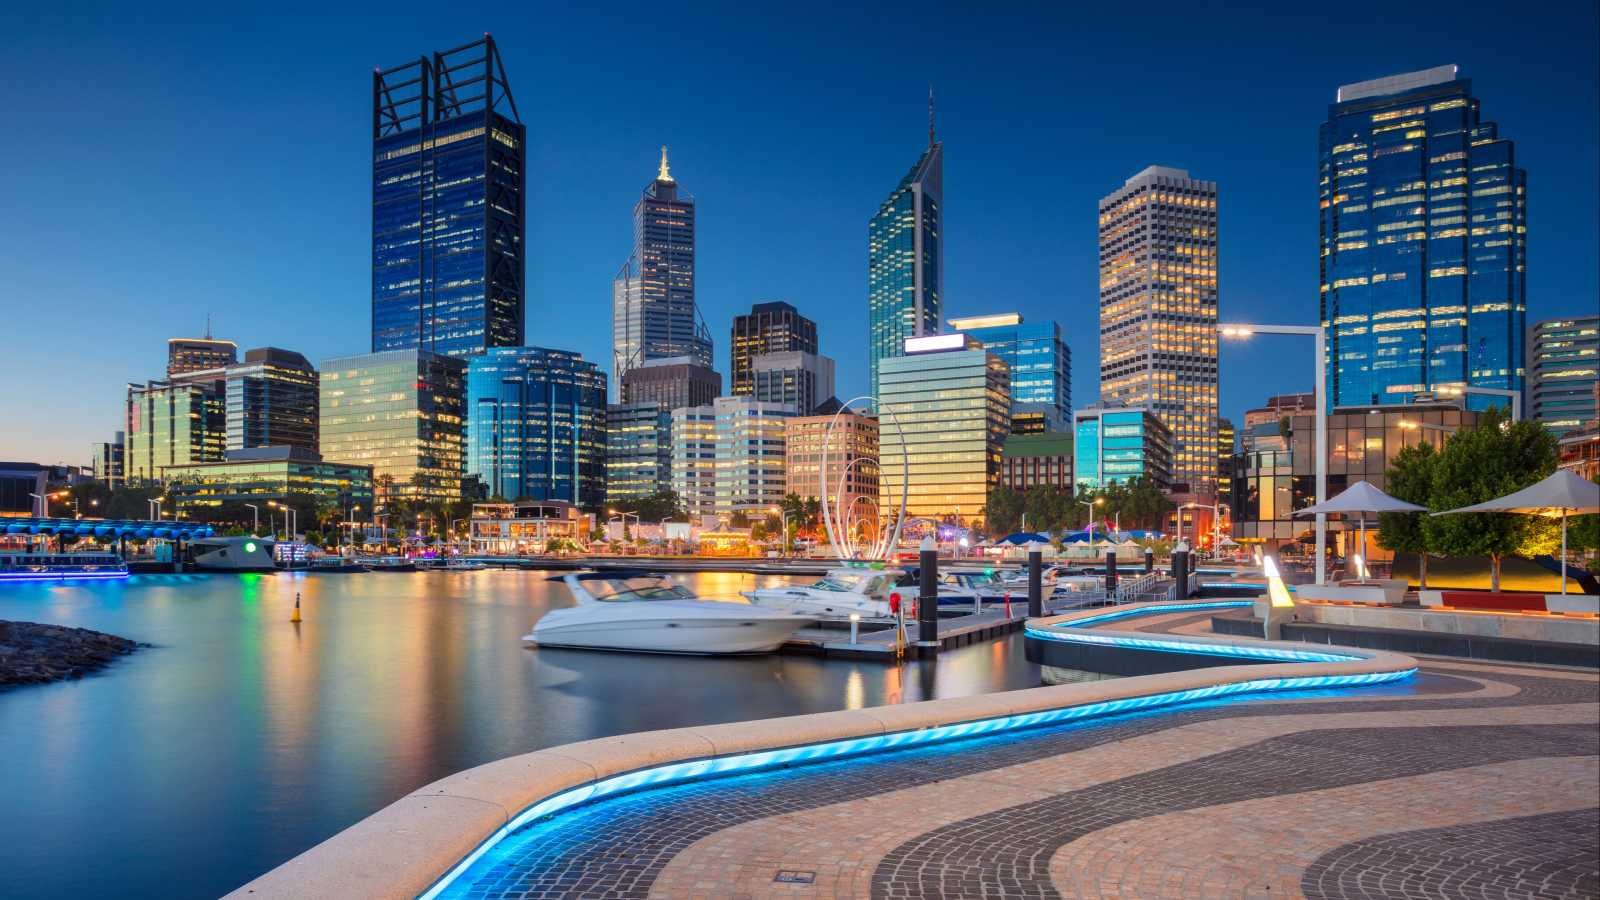 Perth's magical skyline in the evening.